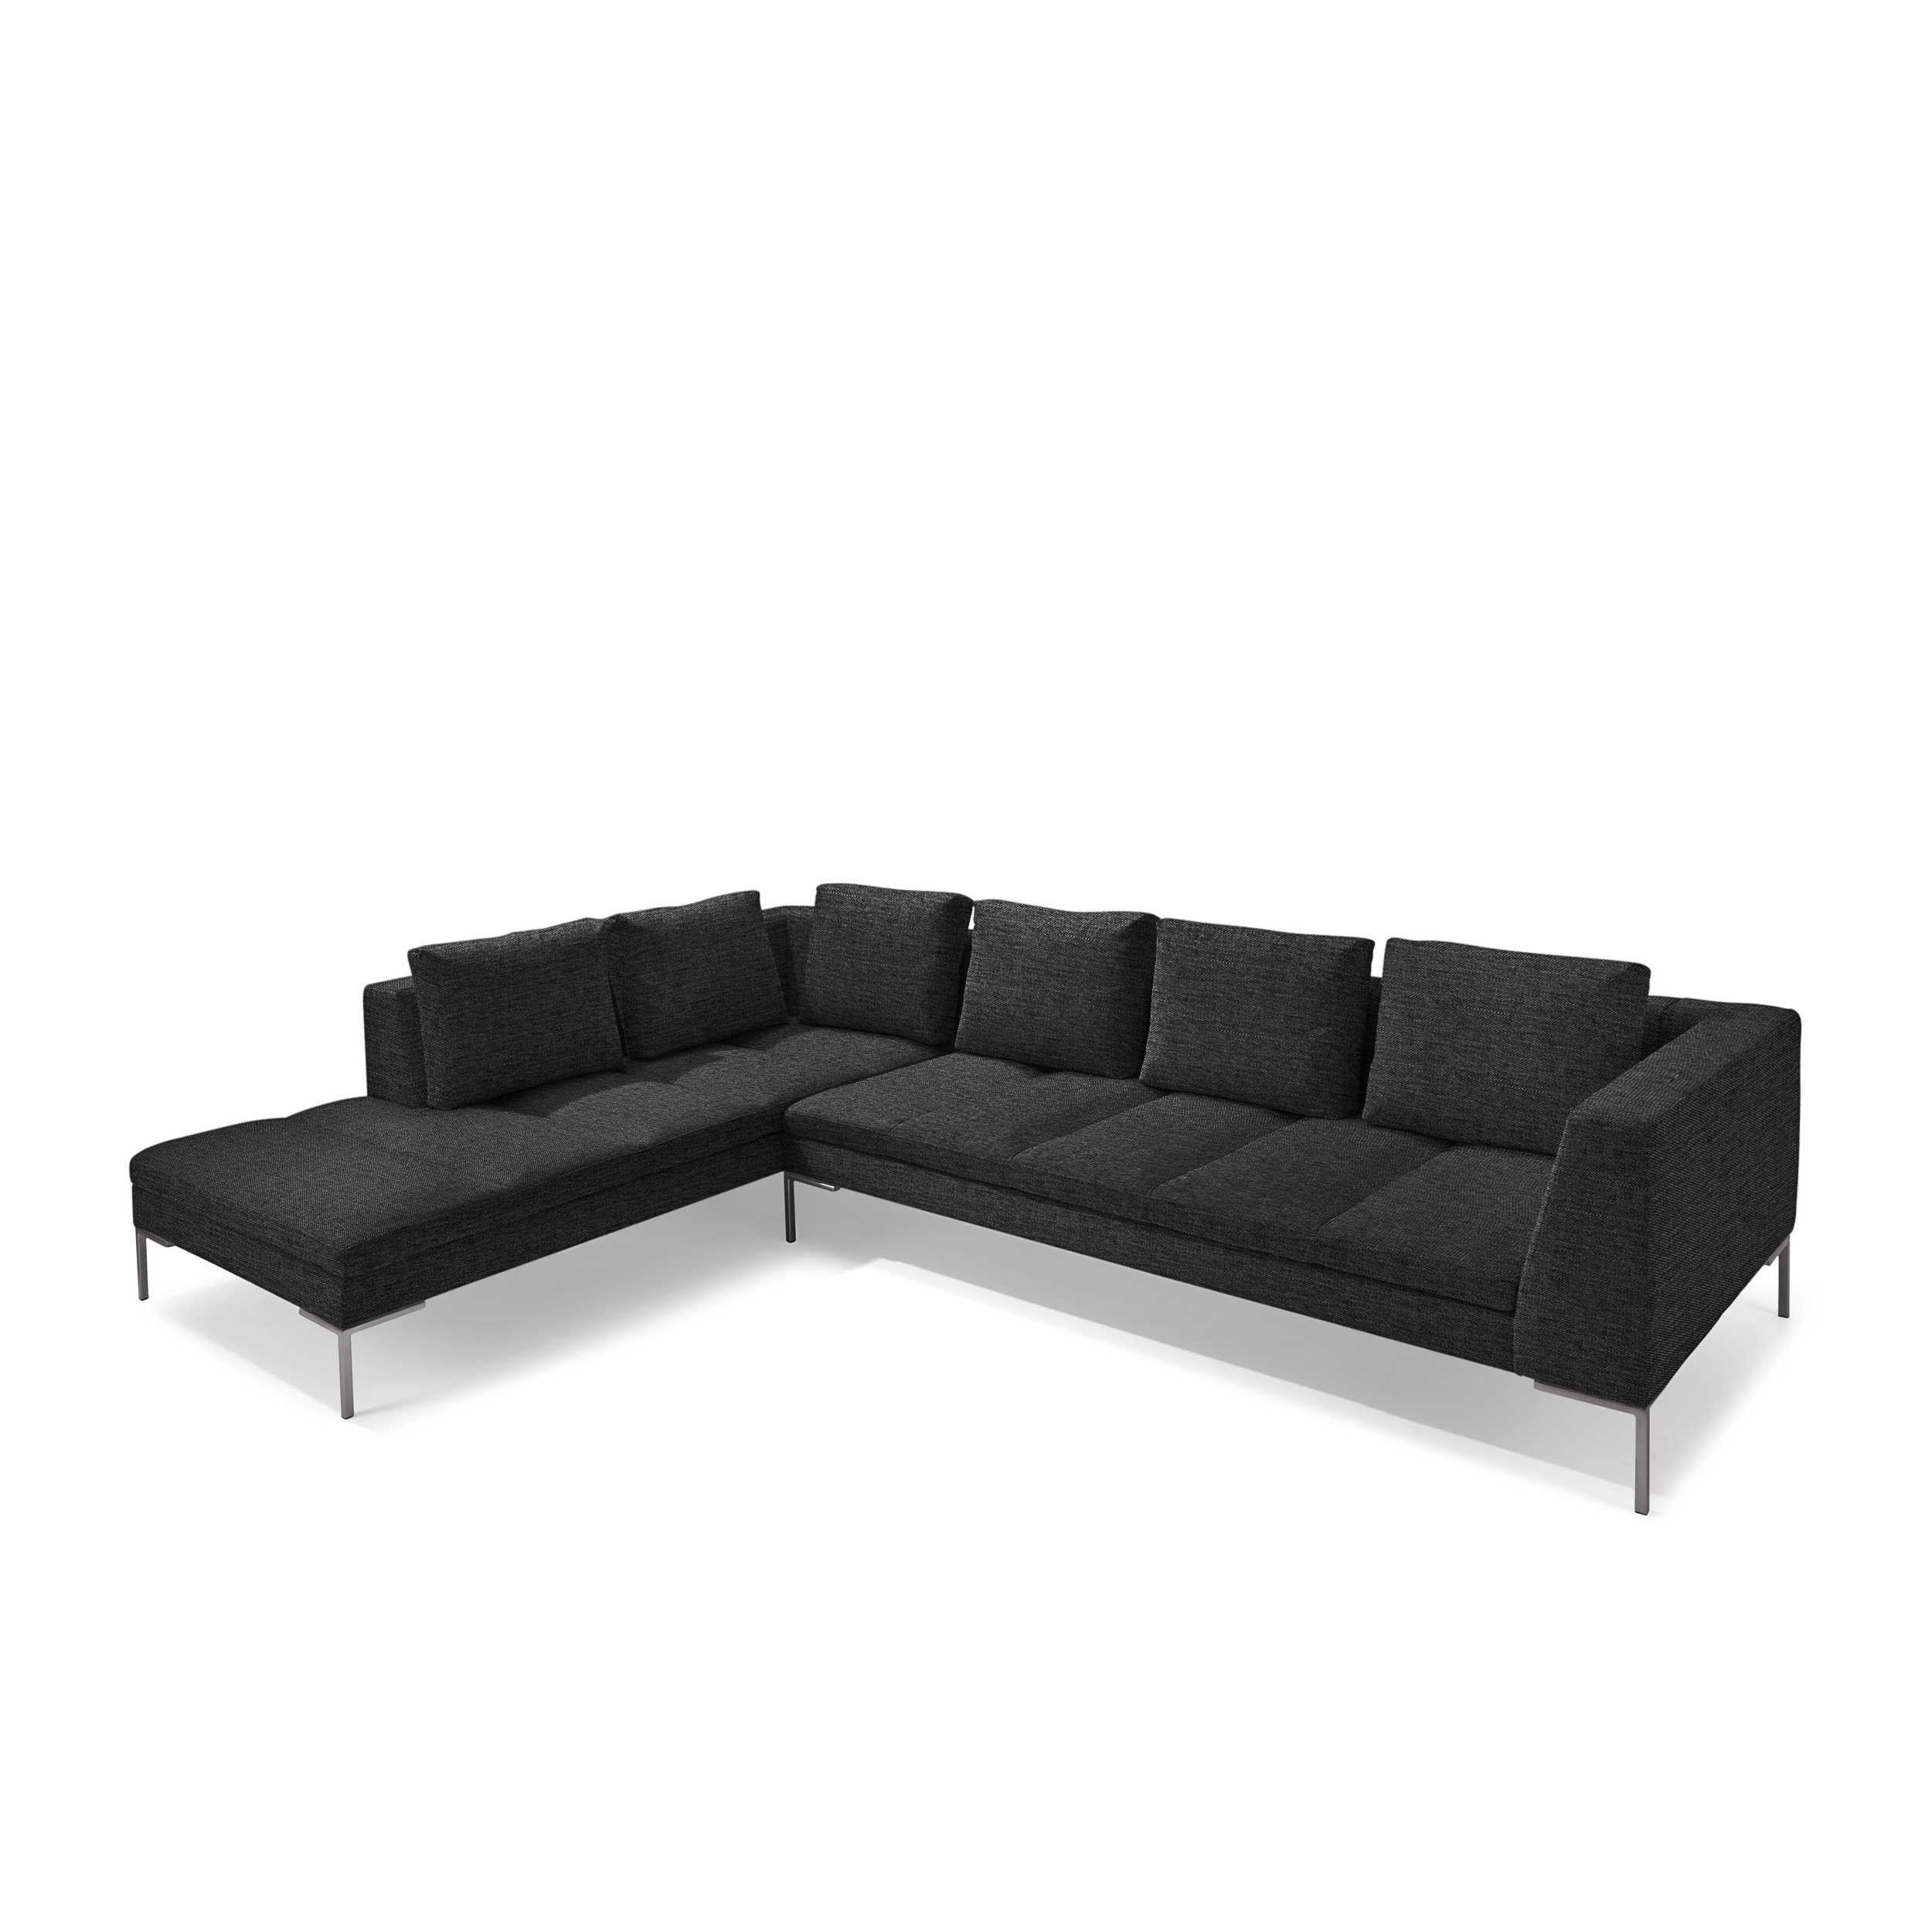 Fabulous Relax Ecksofa in 2020 | Ikea sofa, Ikea karlstad sofa, Living room sofa design